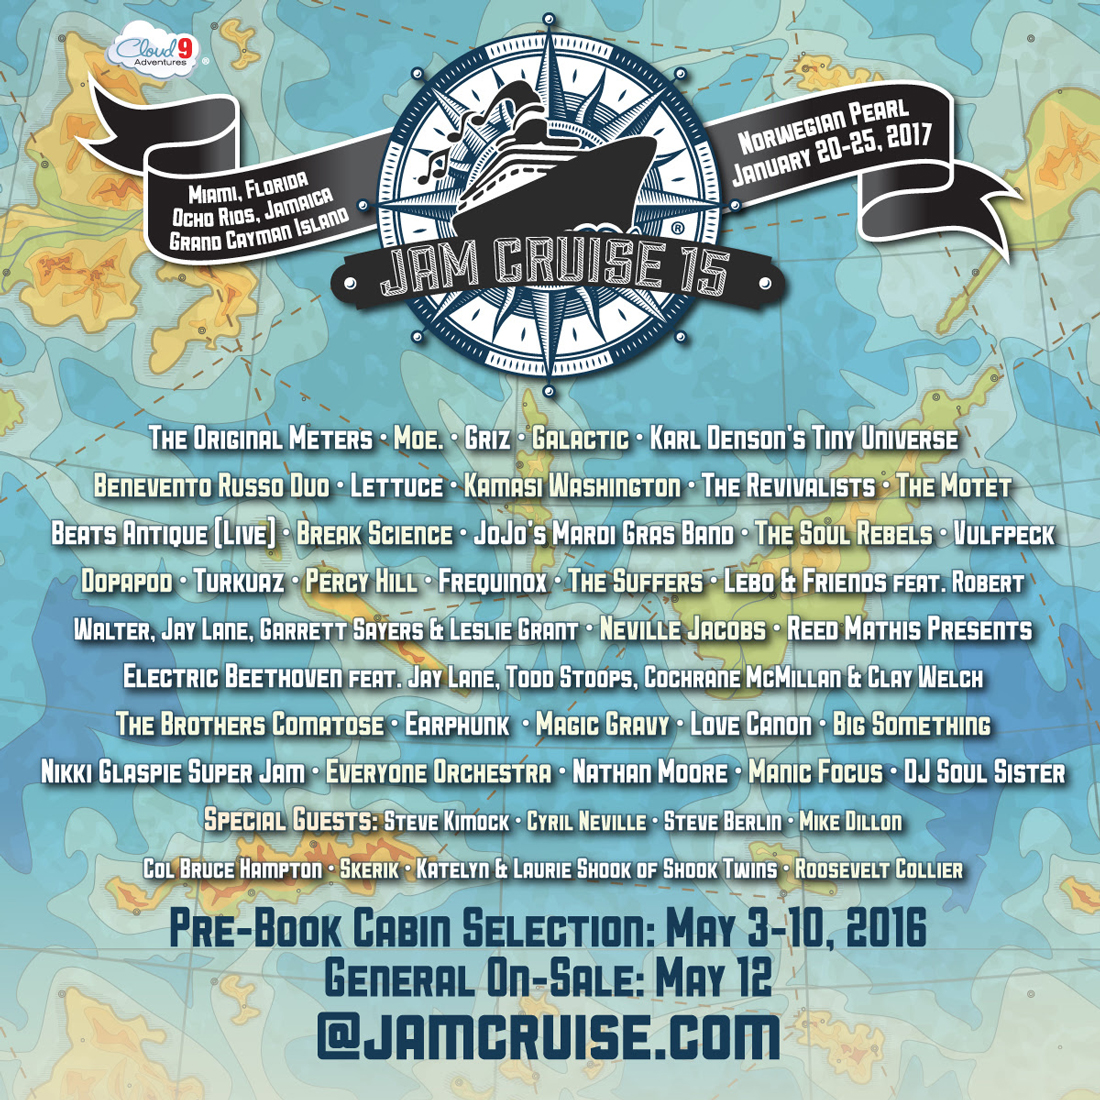 Jam Cruise 15 Lineup. Photo by: Jam Cruise